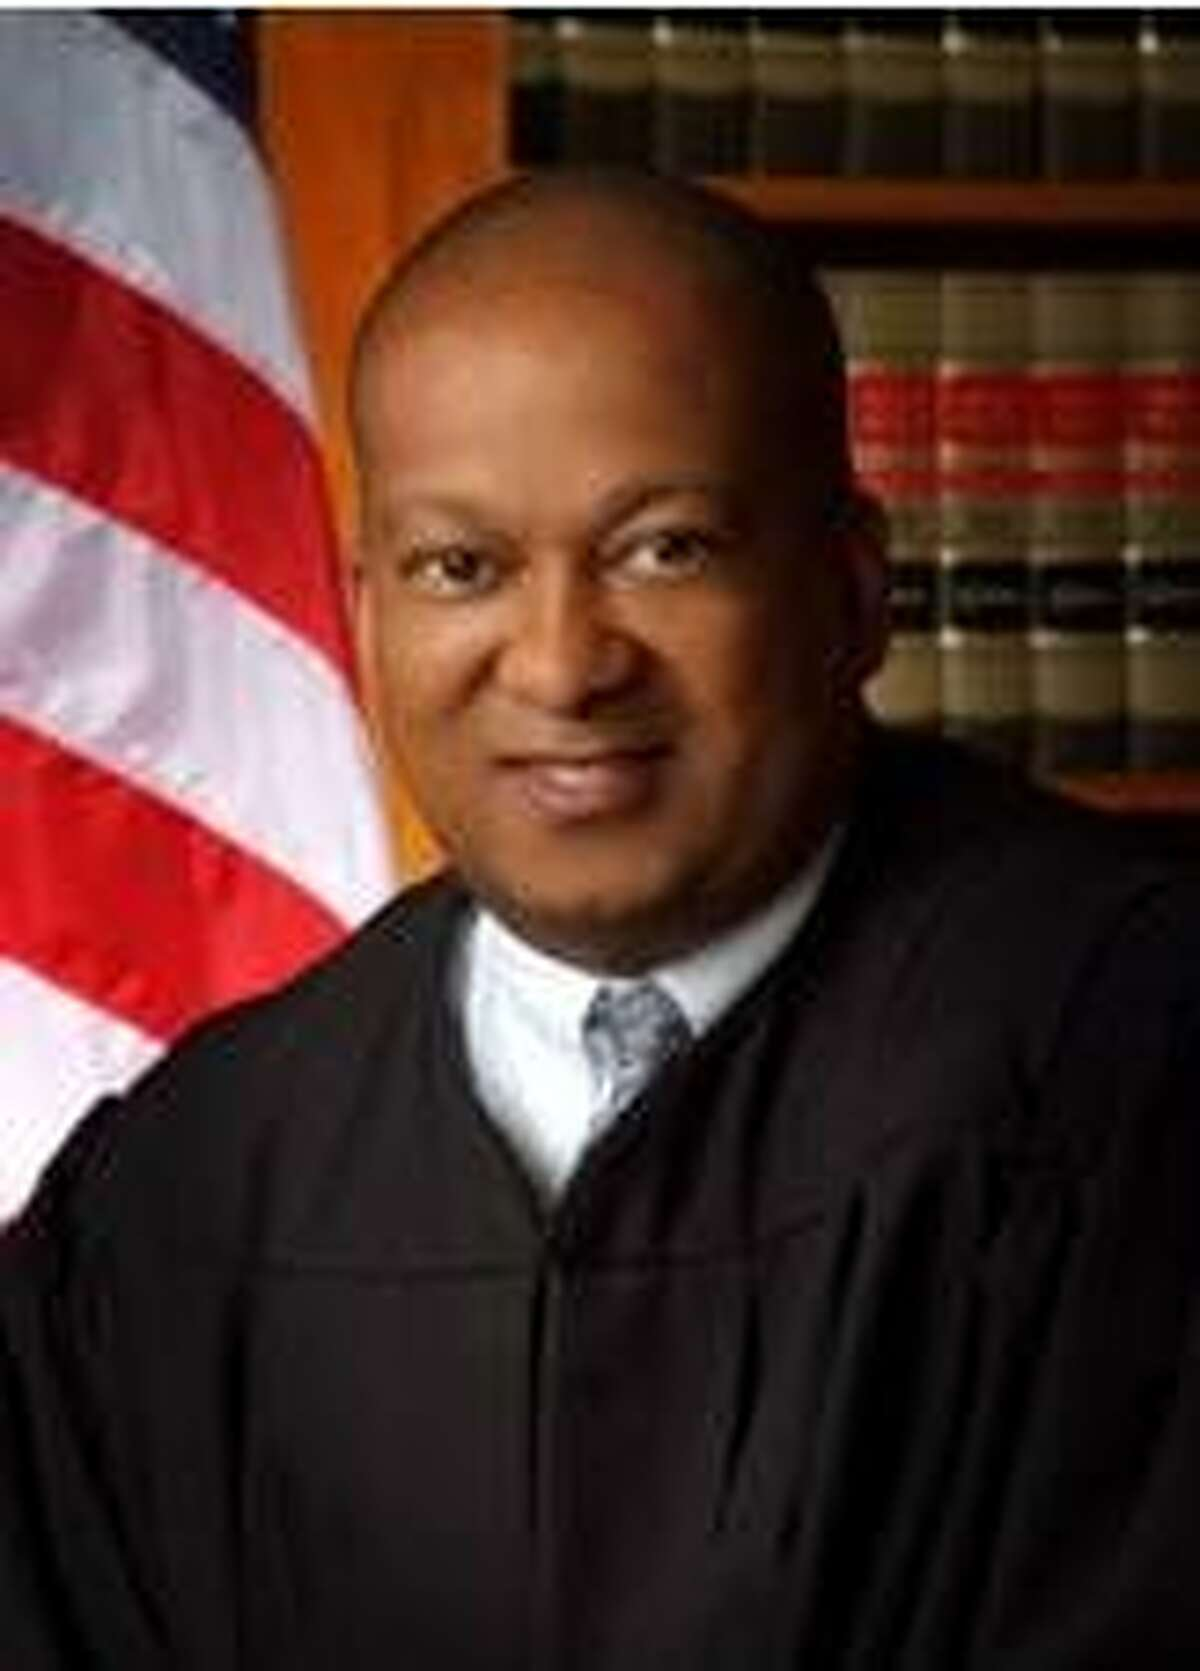 Associate justice, California Court of Appeal